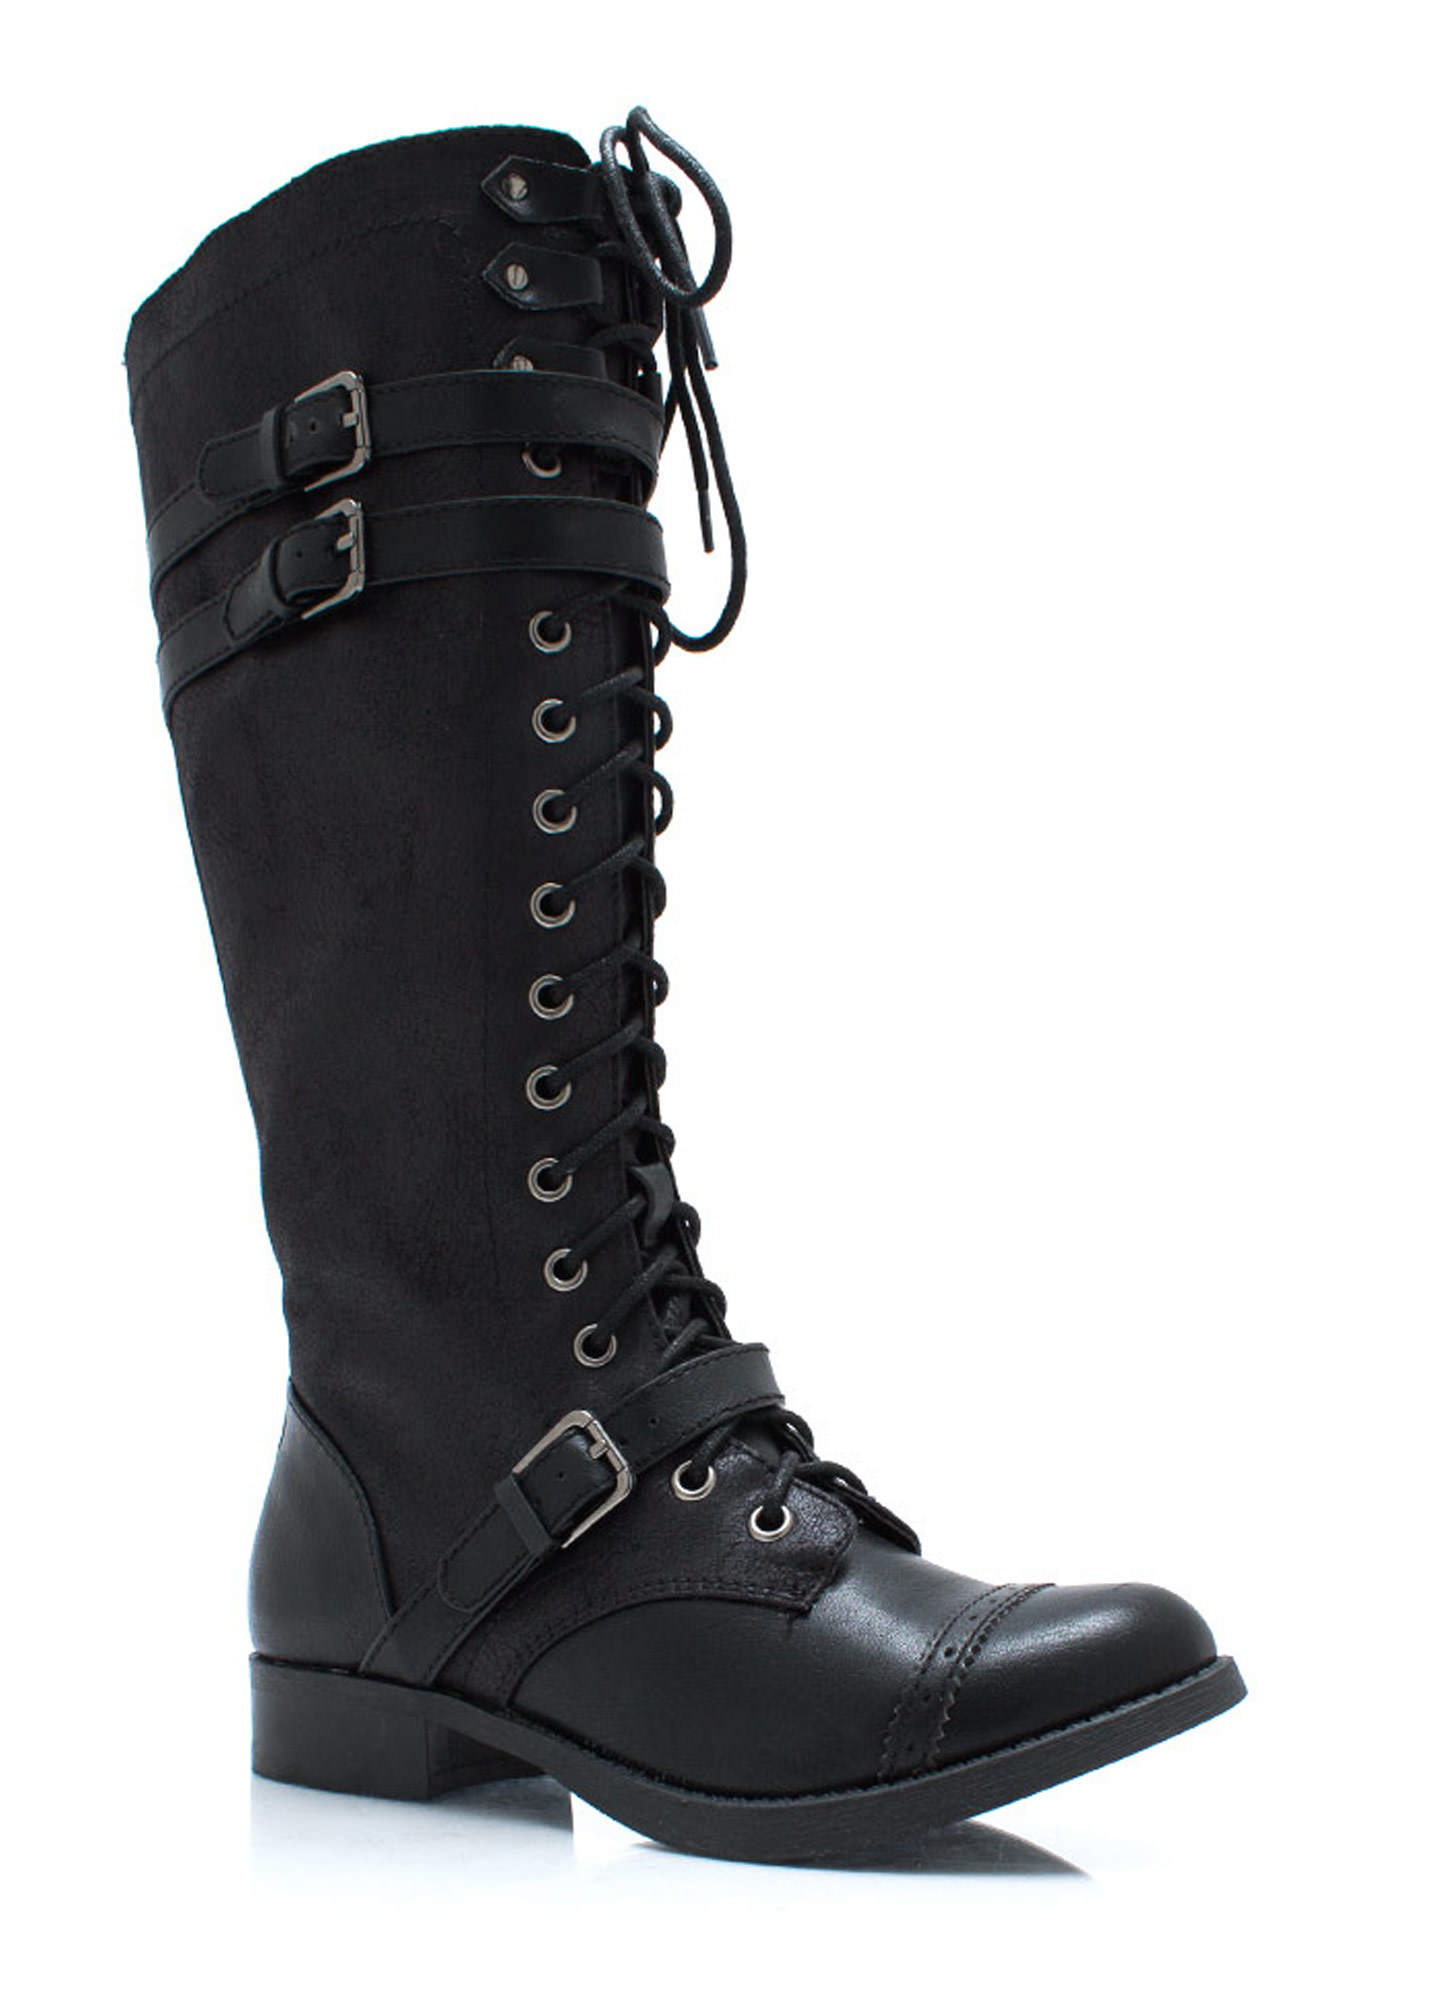 Higher Me Lace Up Boots BLACK